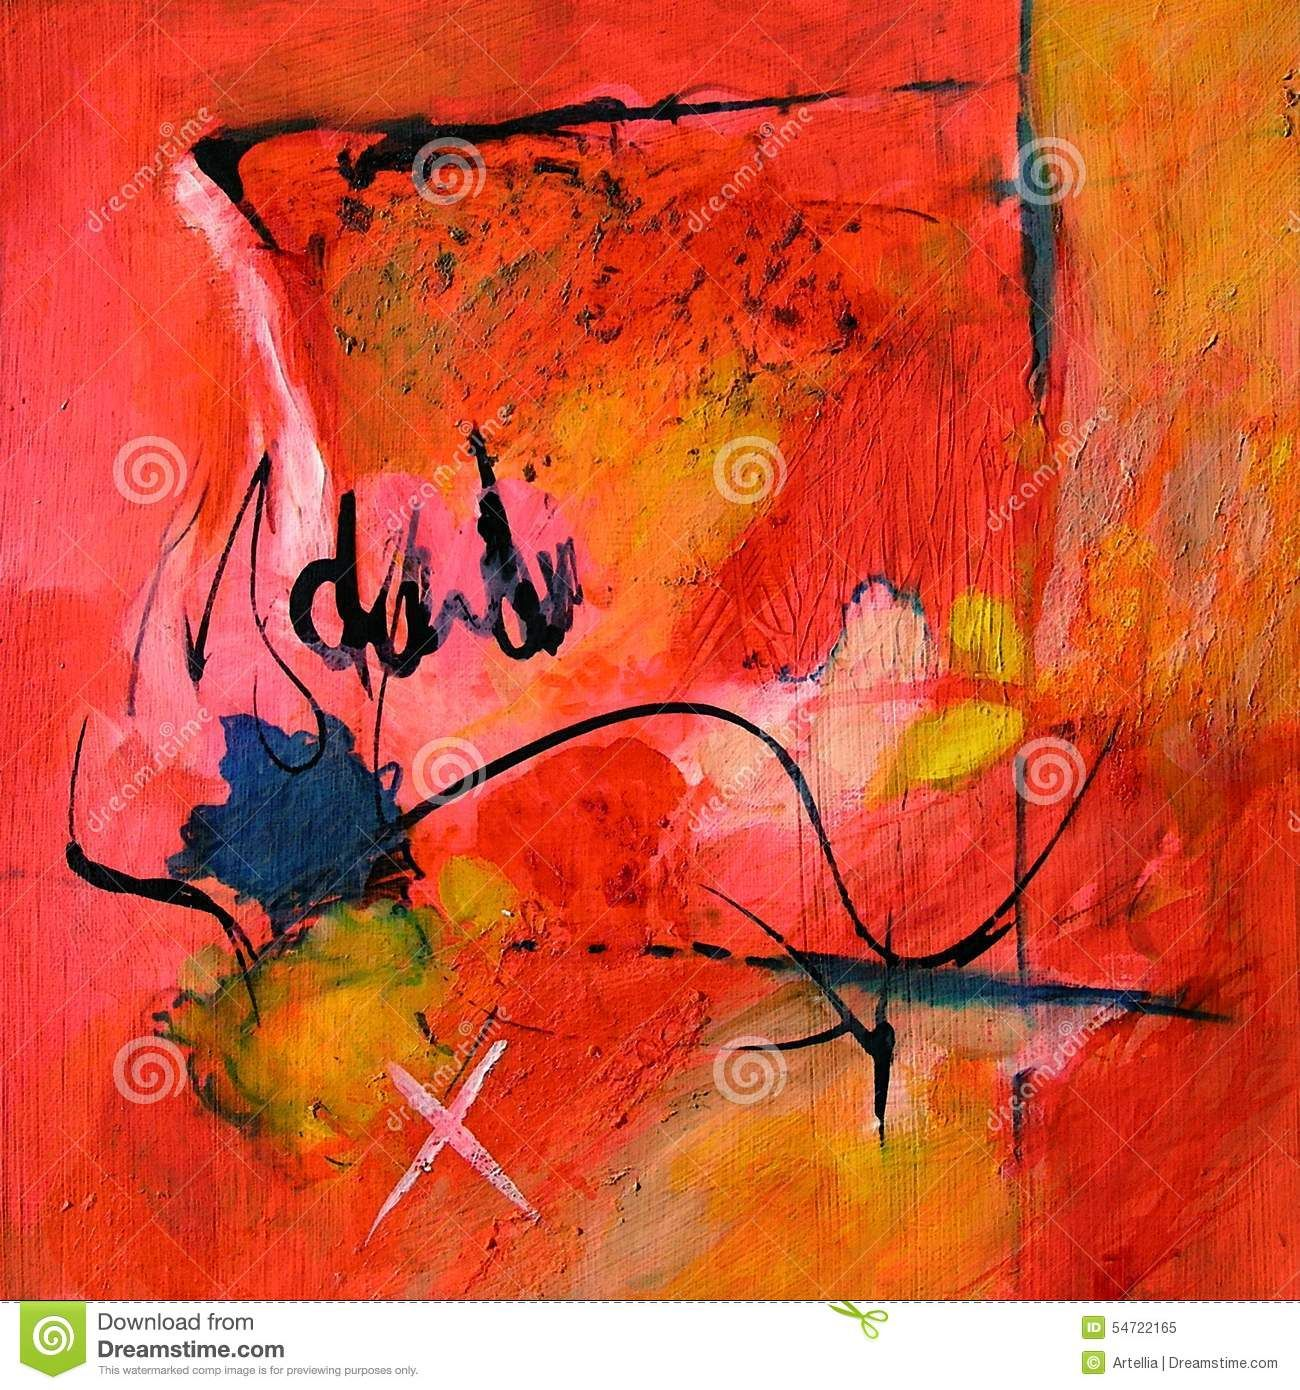 Modern Abstract Art - Painting - Calligraphy / Graffiti Red And ...